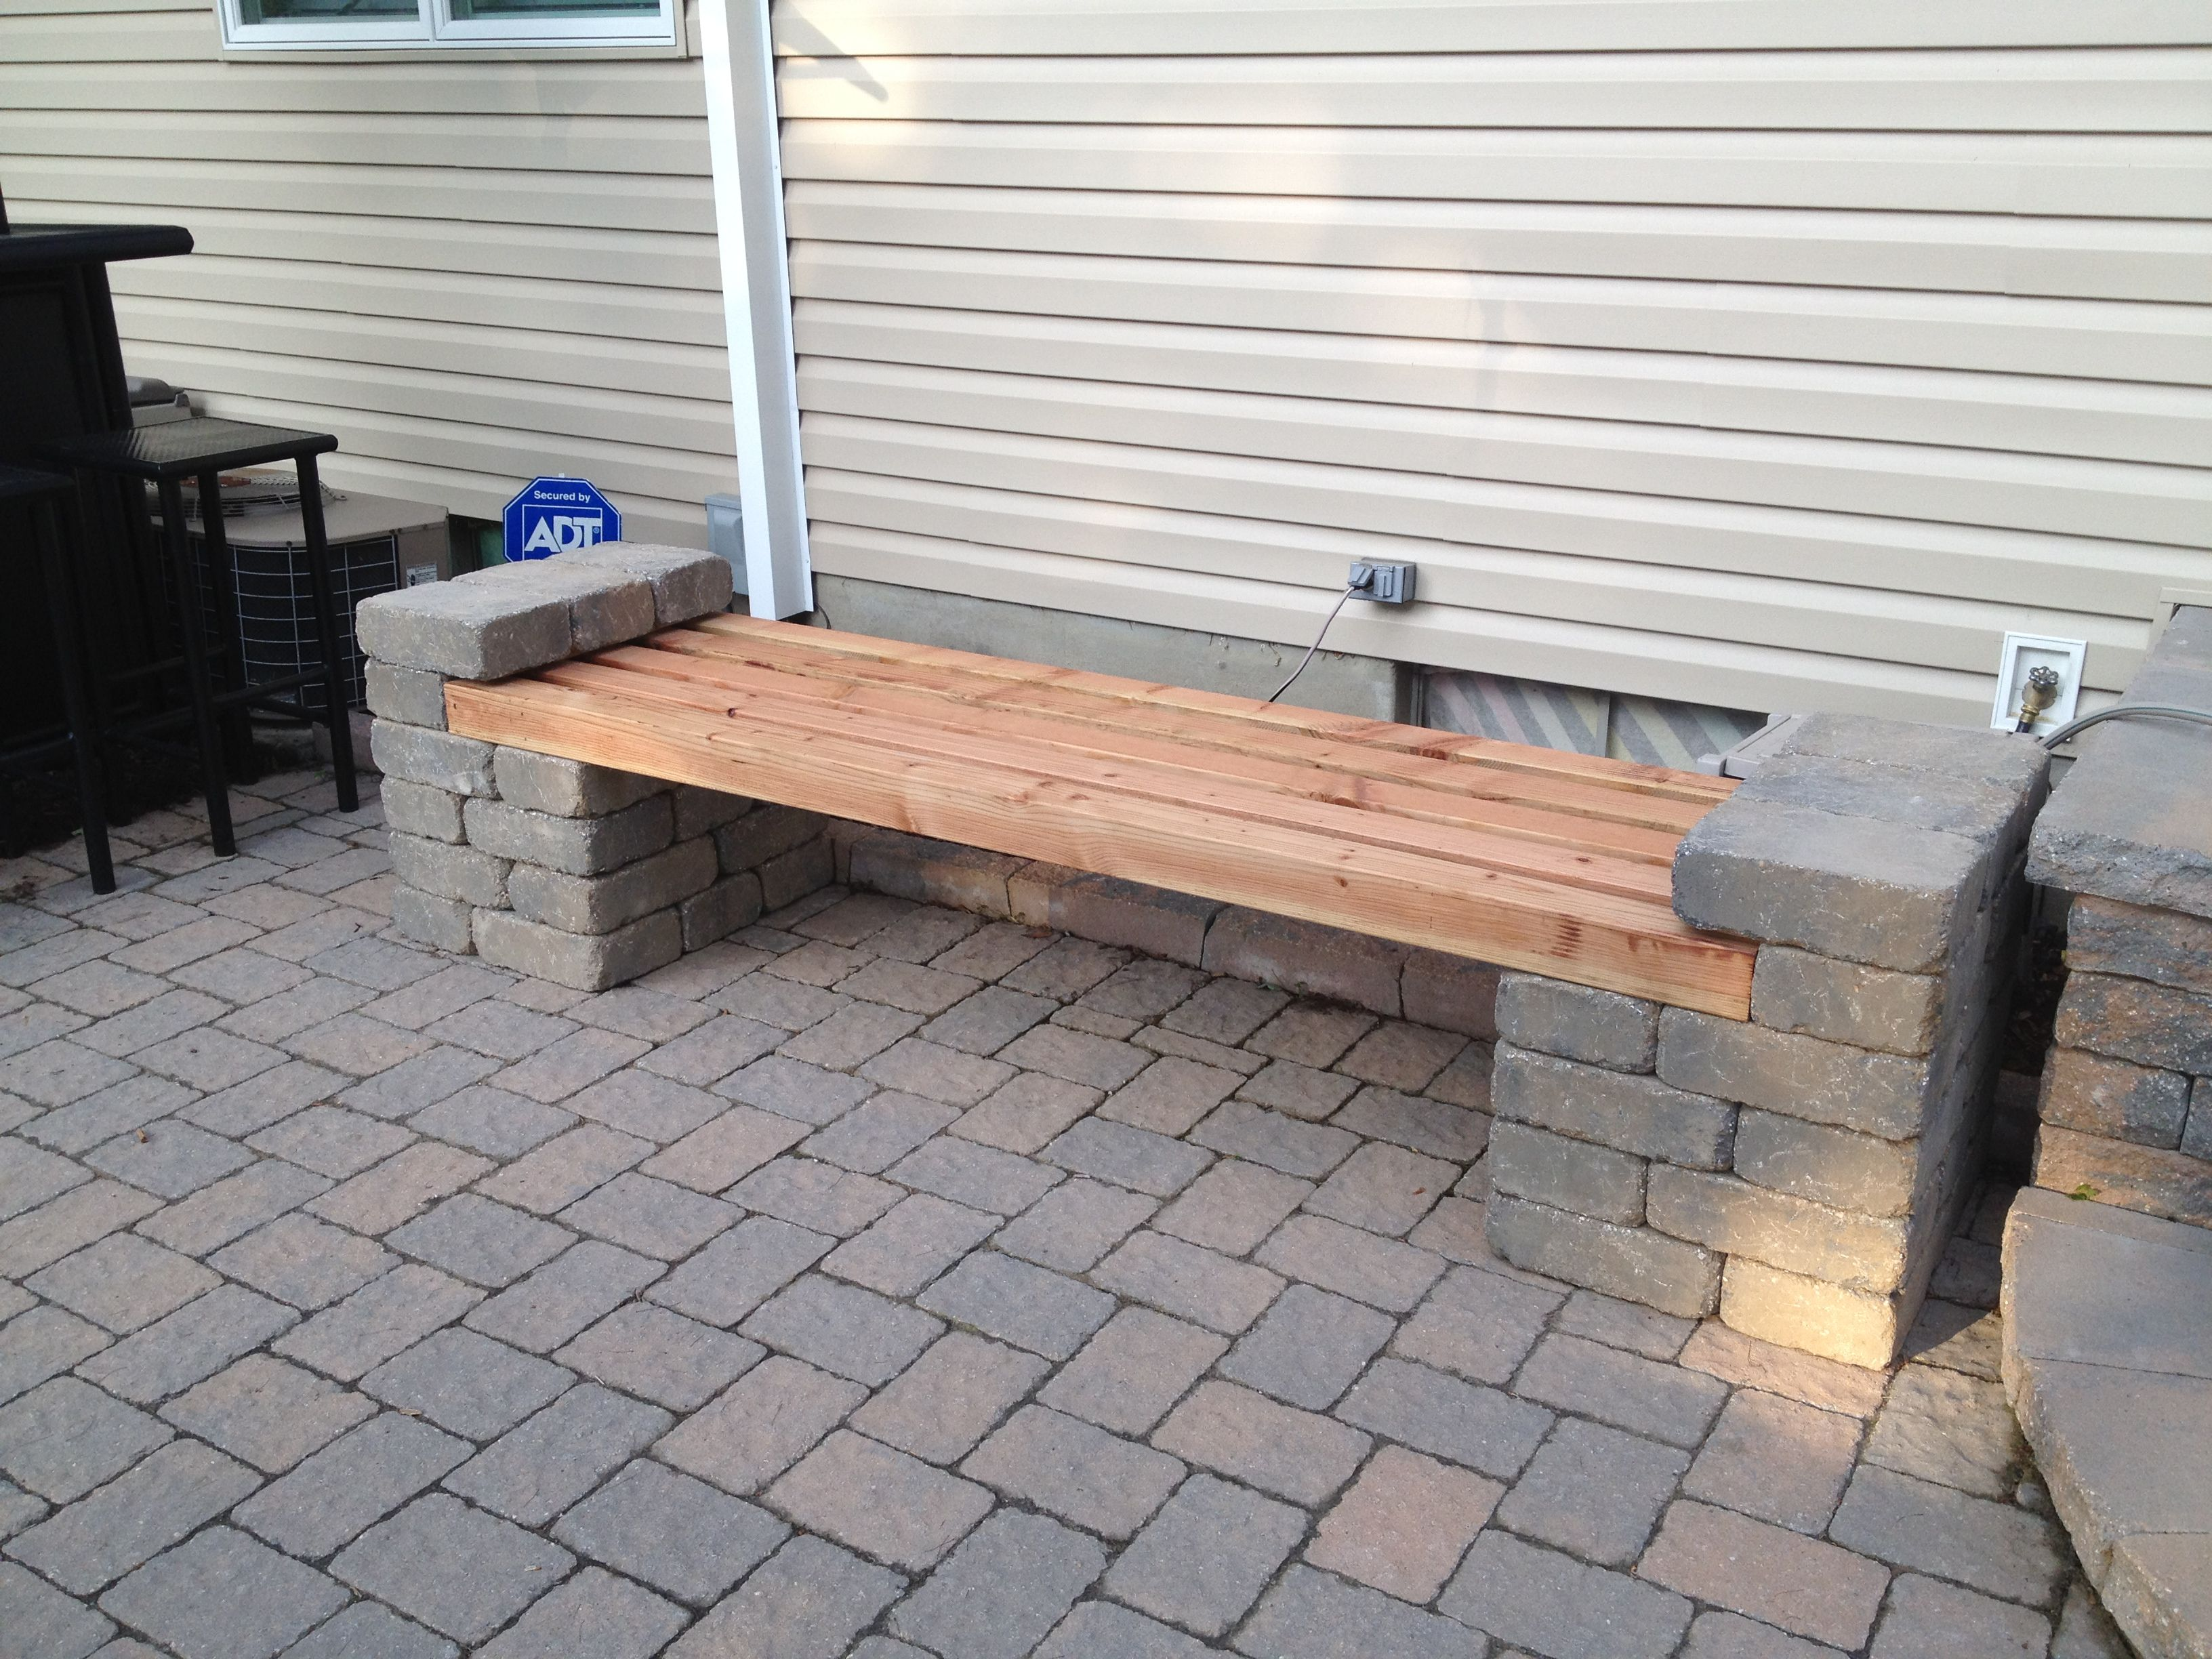 Banc Avec Parpaing Patio Block And Wood Bench Design Pinterest Patio